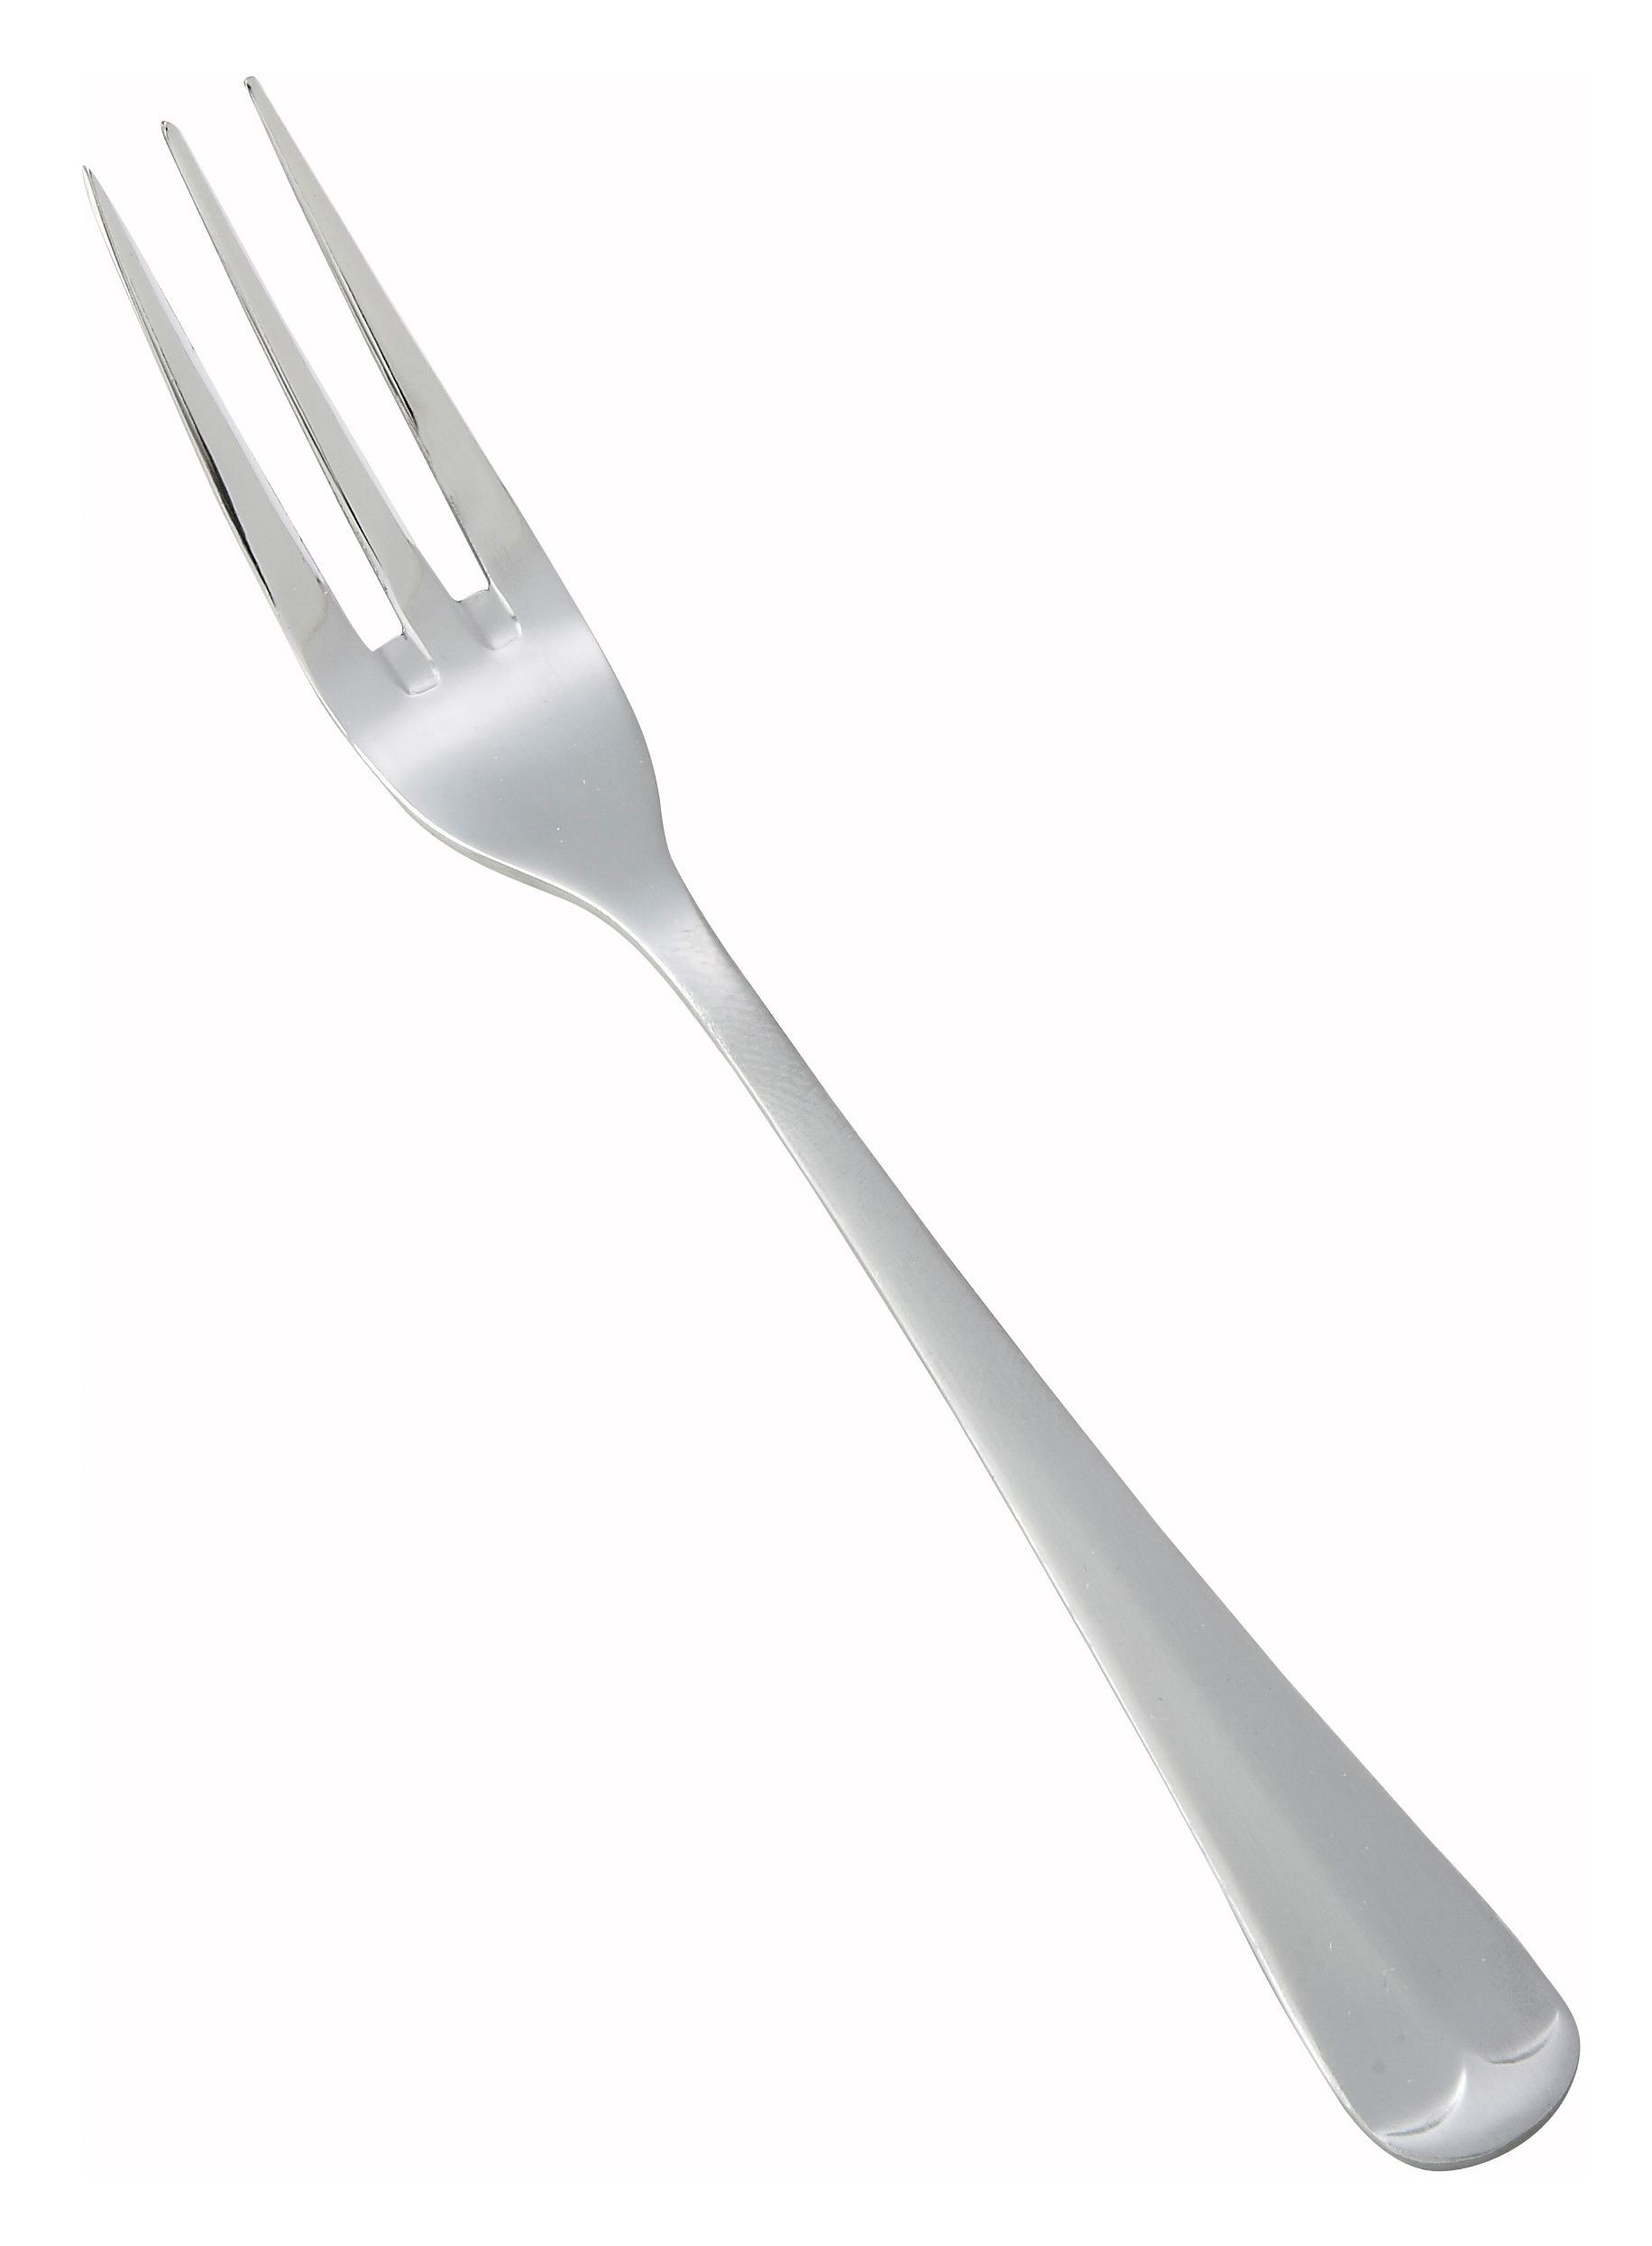 Winco 0015-06 Lafayette Heavy-Handle Satin Finish Stainless Steel Salad Fork (12/Pack)